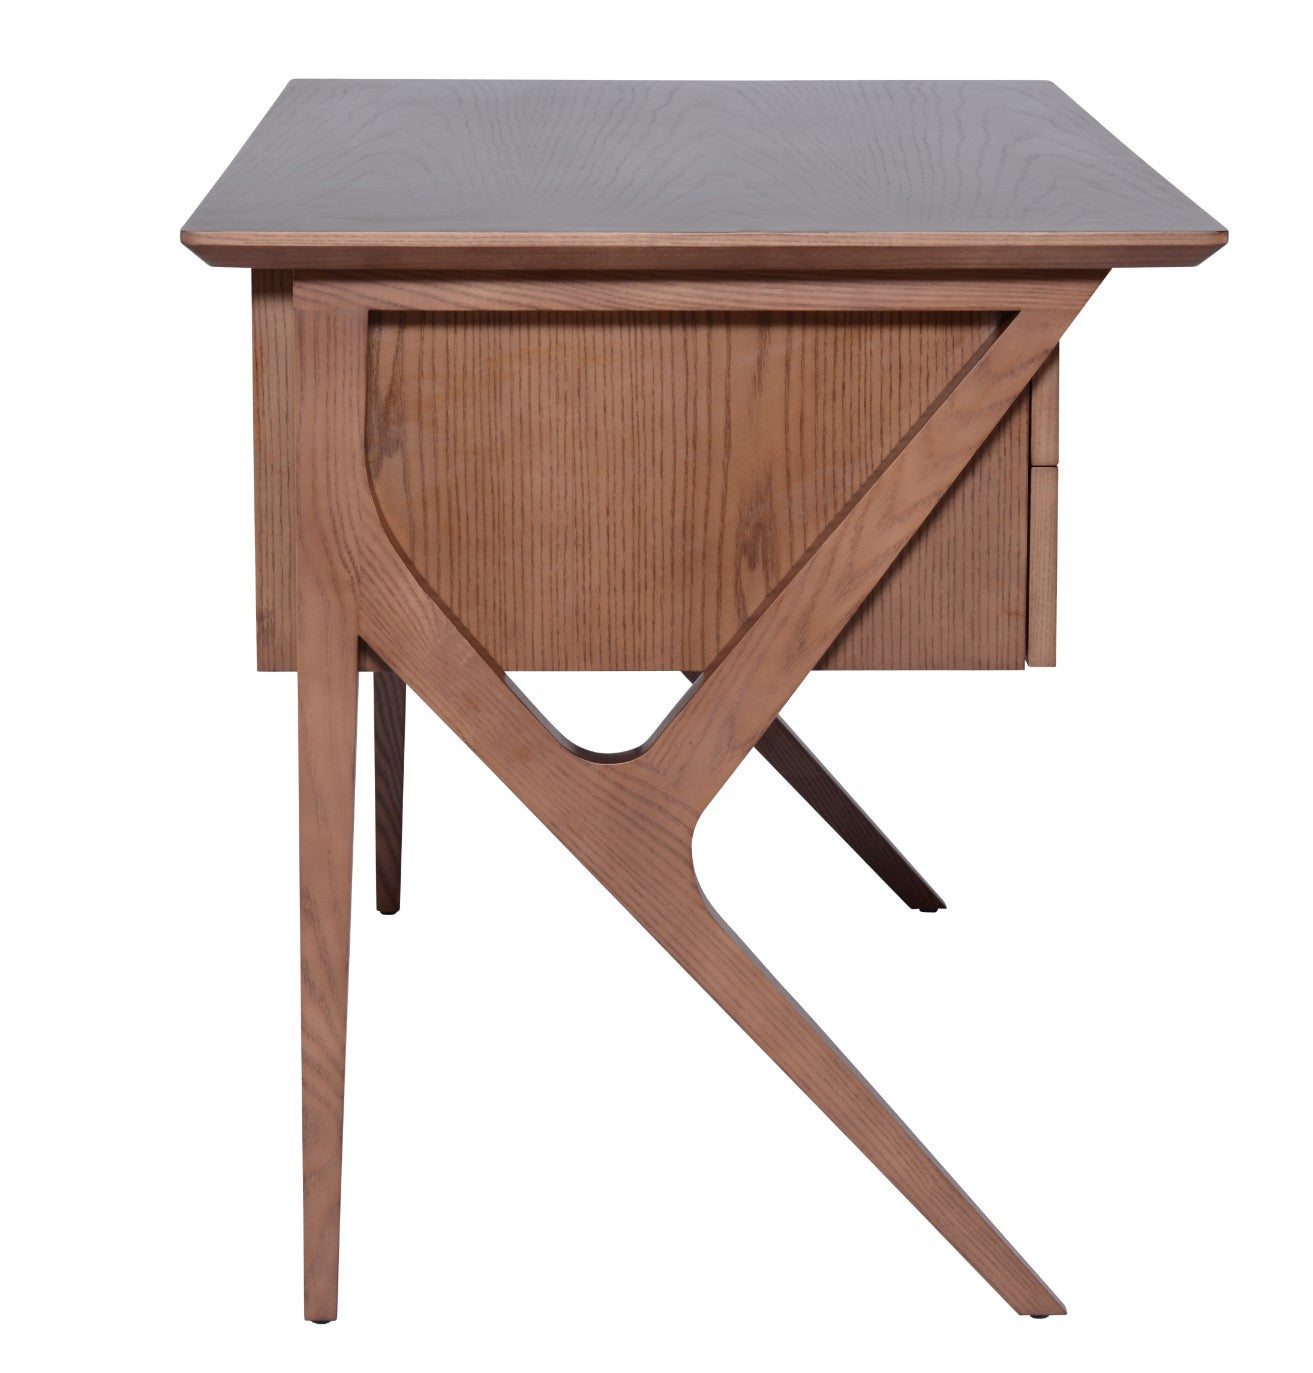 Image of: 53 Walnut Mid Century Desk With Drawers By Nuevo Officedesk Com